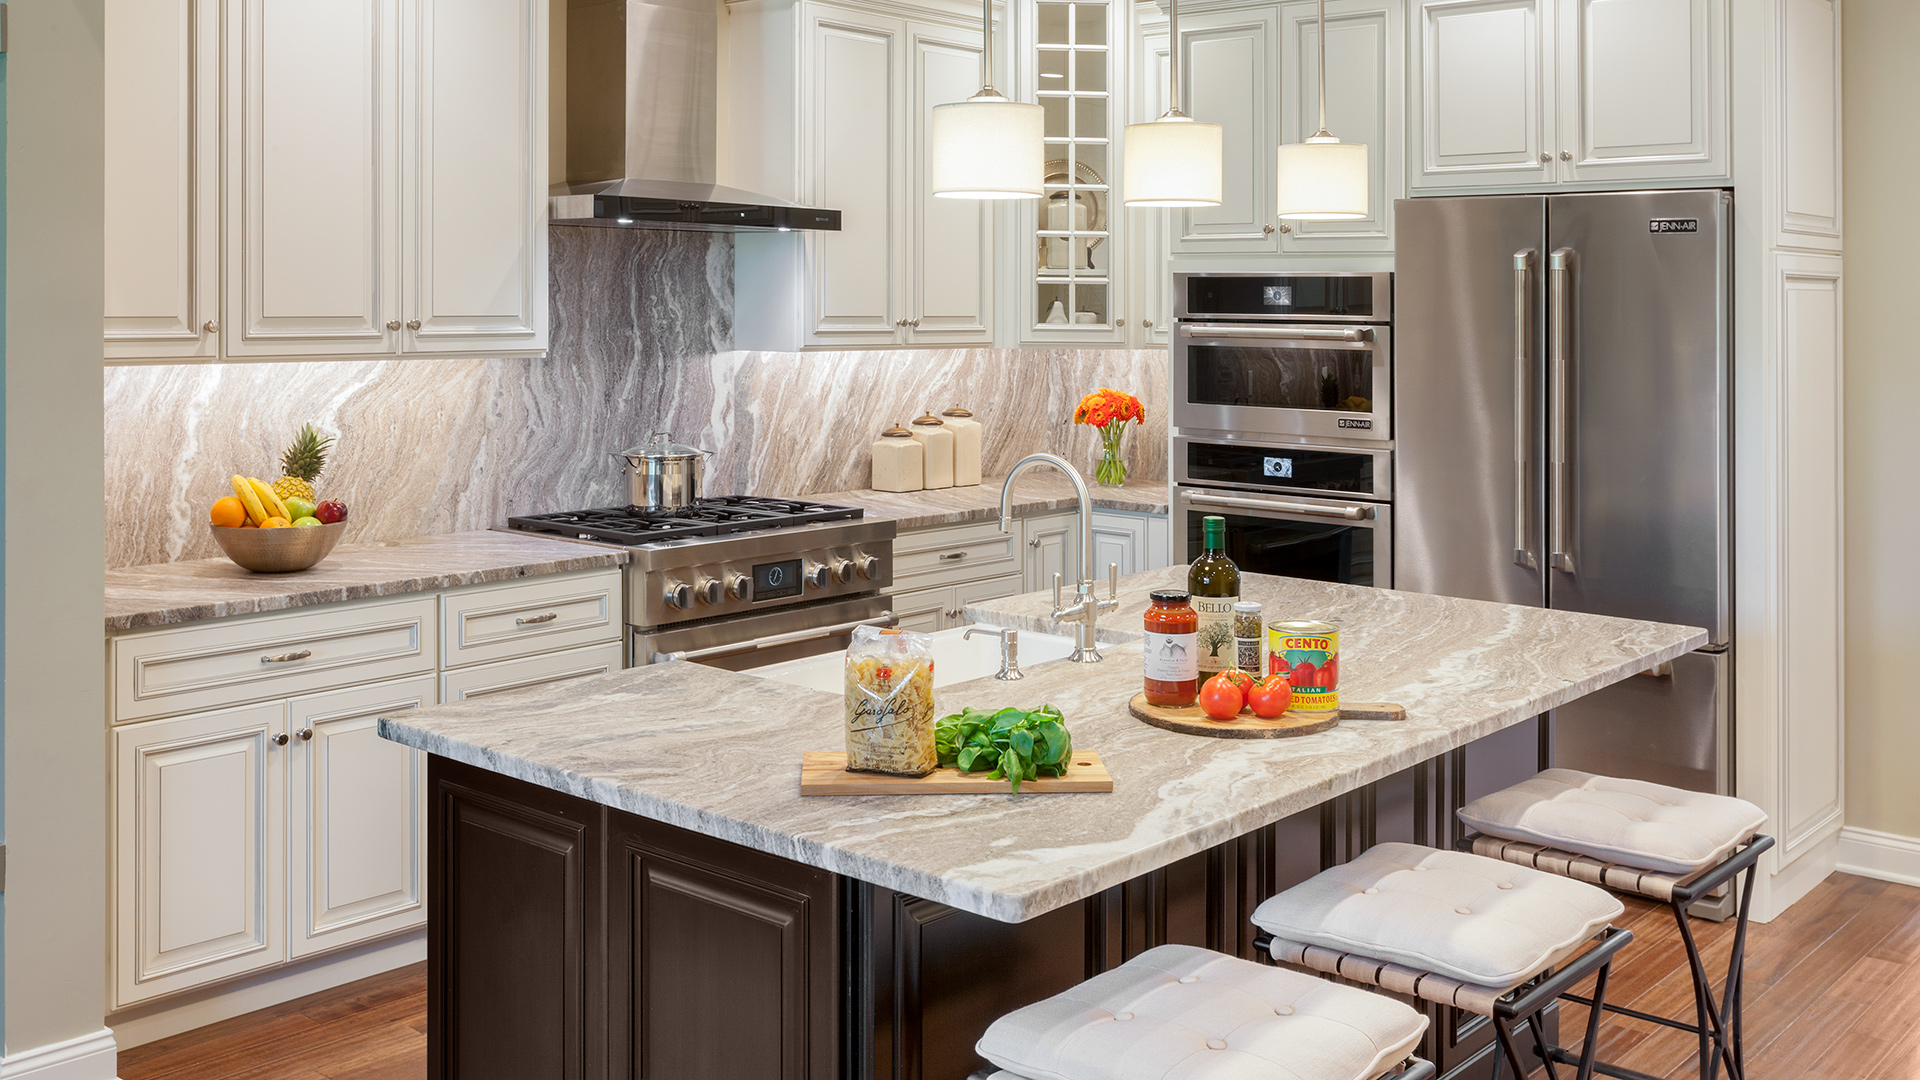 Luxury living with the best layouts and features for your new kitchen